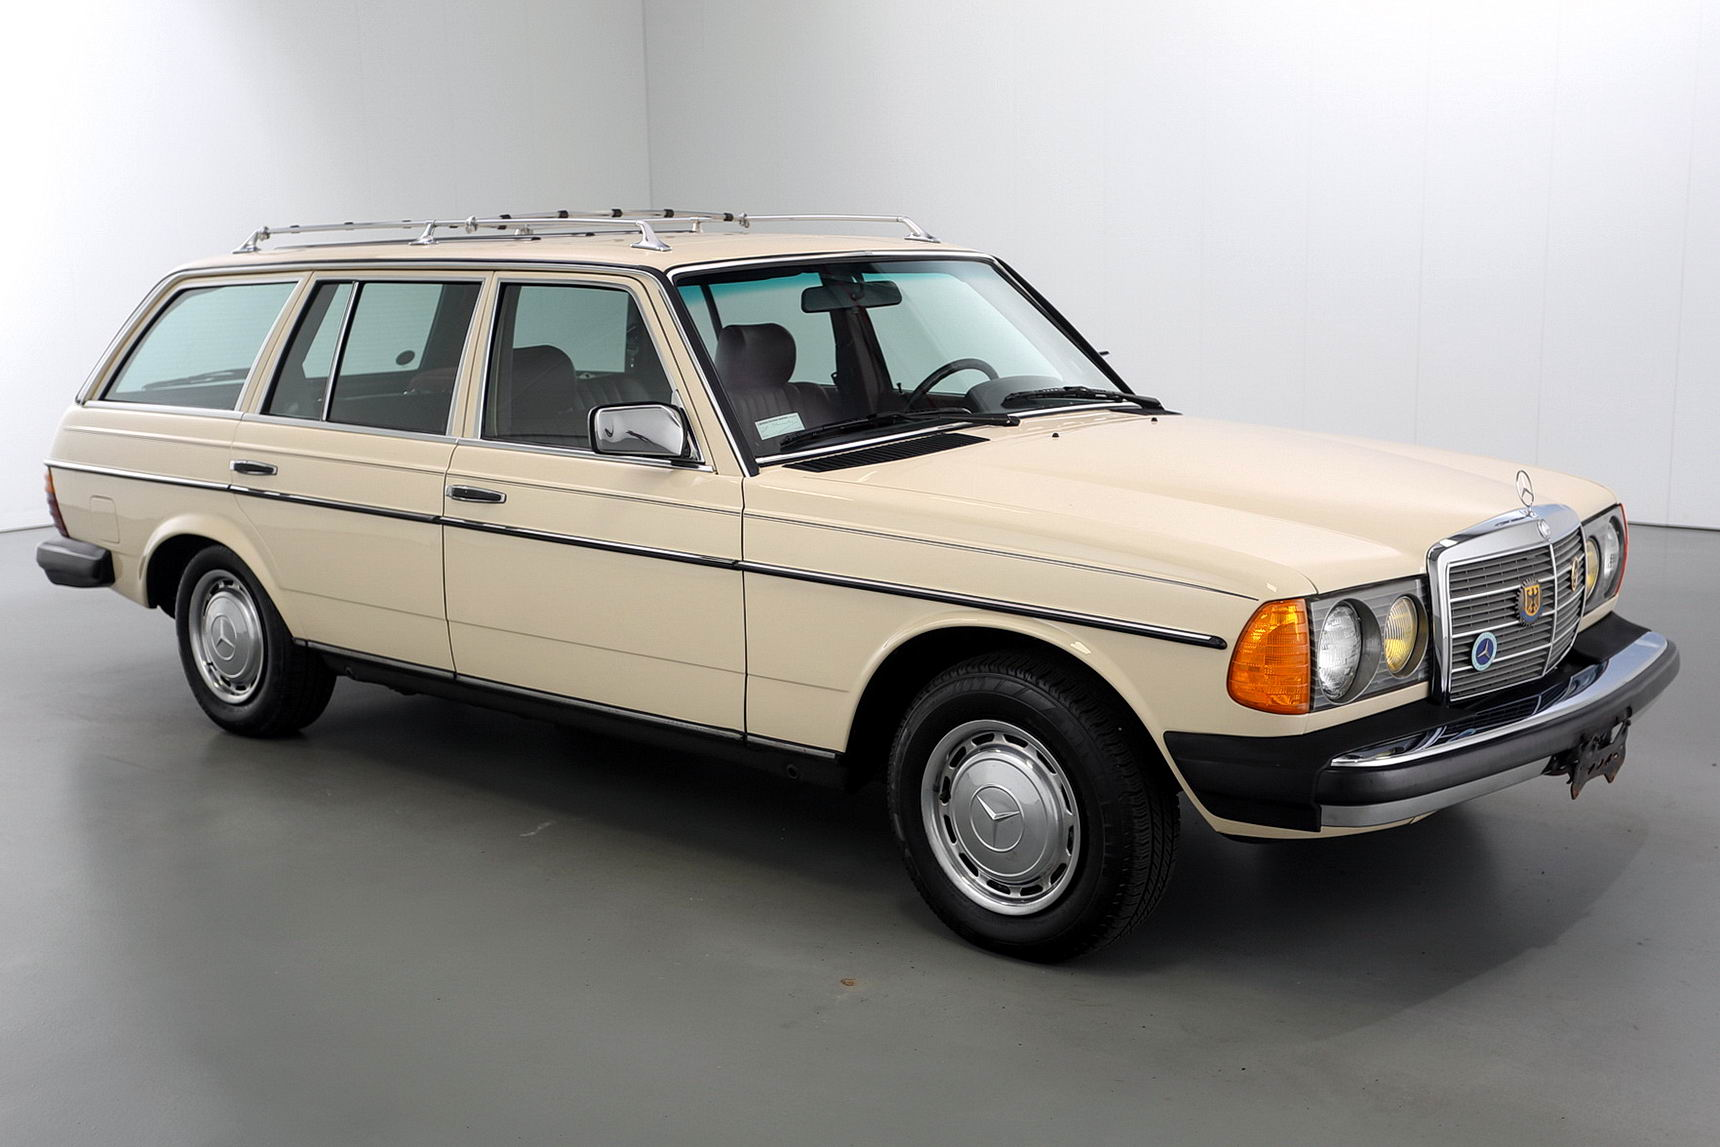 1985 mercedes benz 300td estate wagon brutal motors for Mercedes benz 300 td